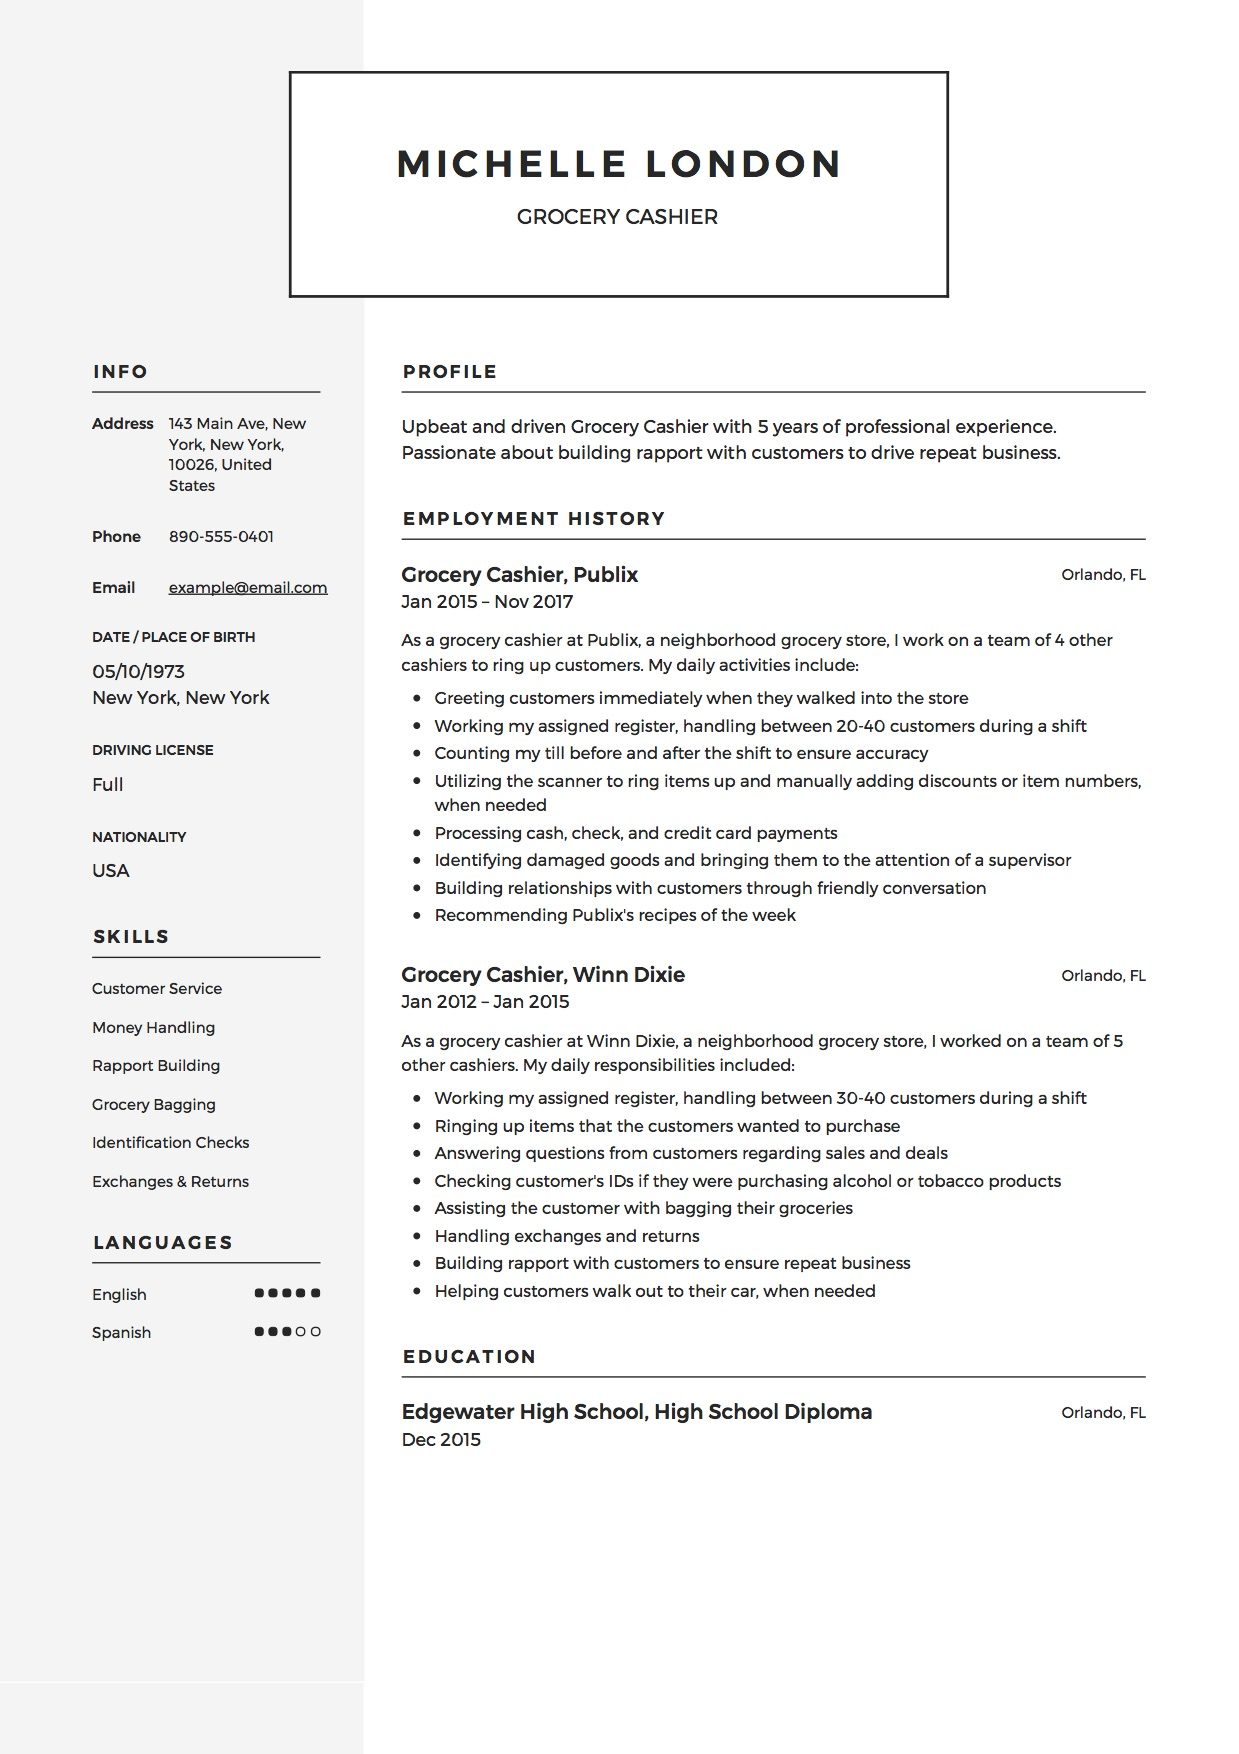 Grocery Cashier Resume Template